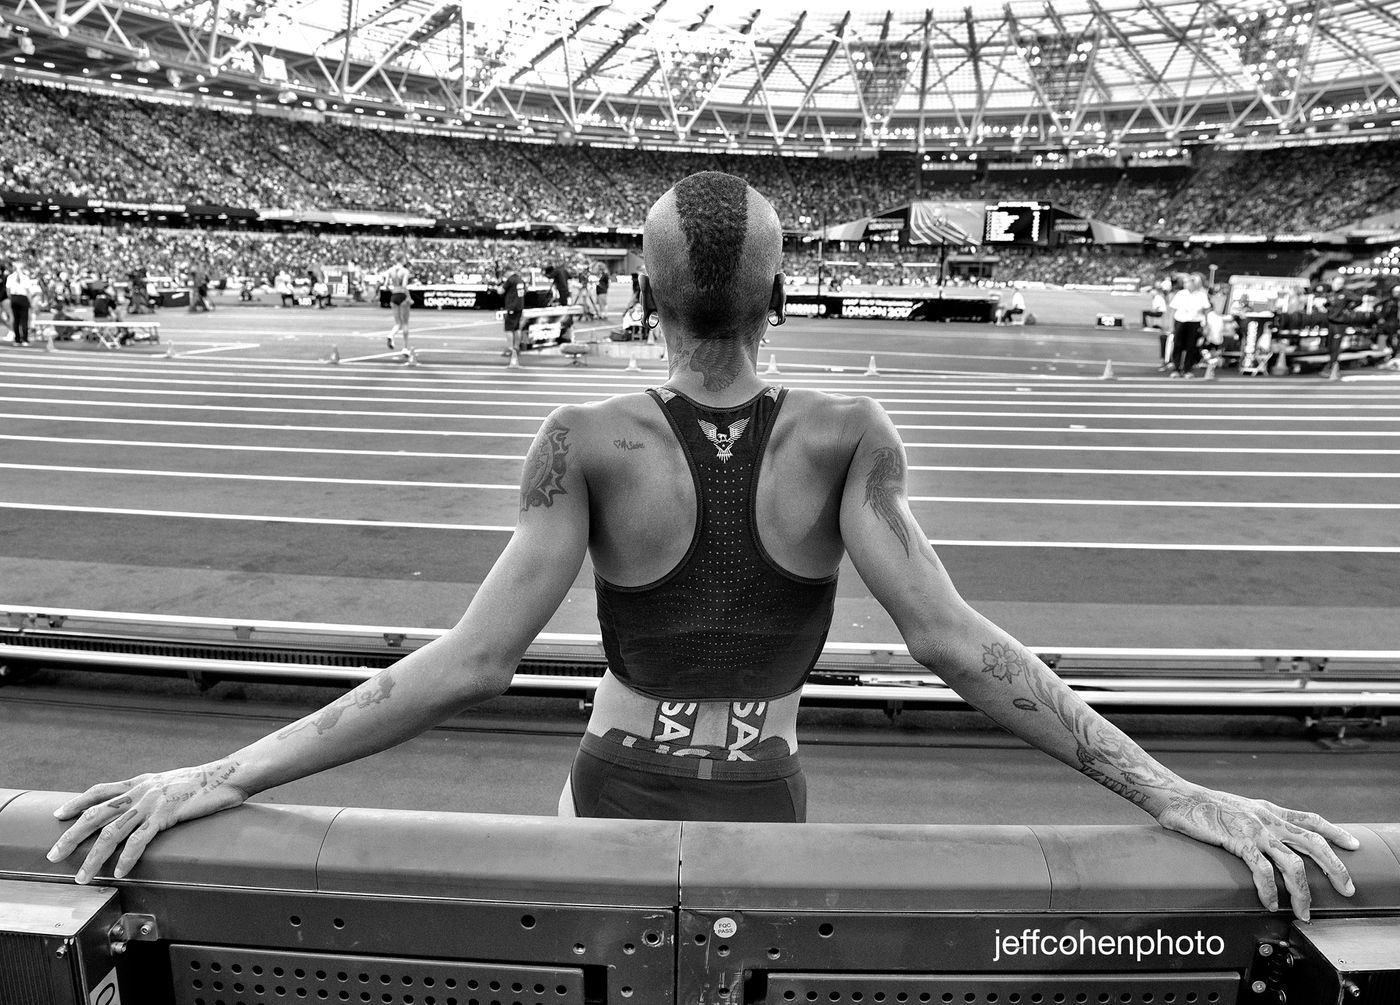 2017-IAAF-WC-London-night-7-mcpherson-hjw-bw--8189--jeff-cohen-photo--web.jpg